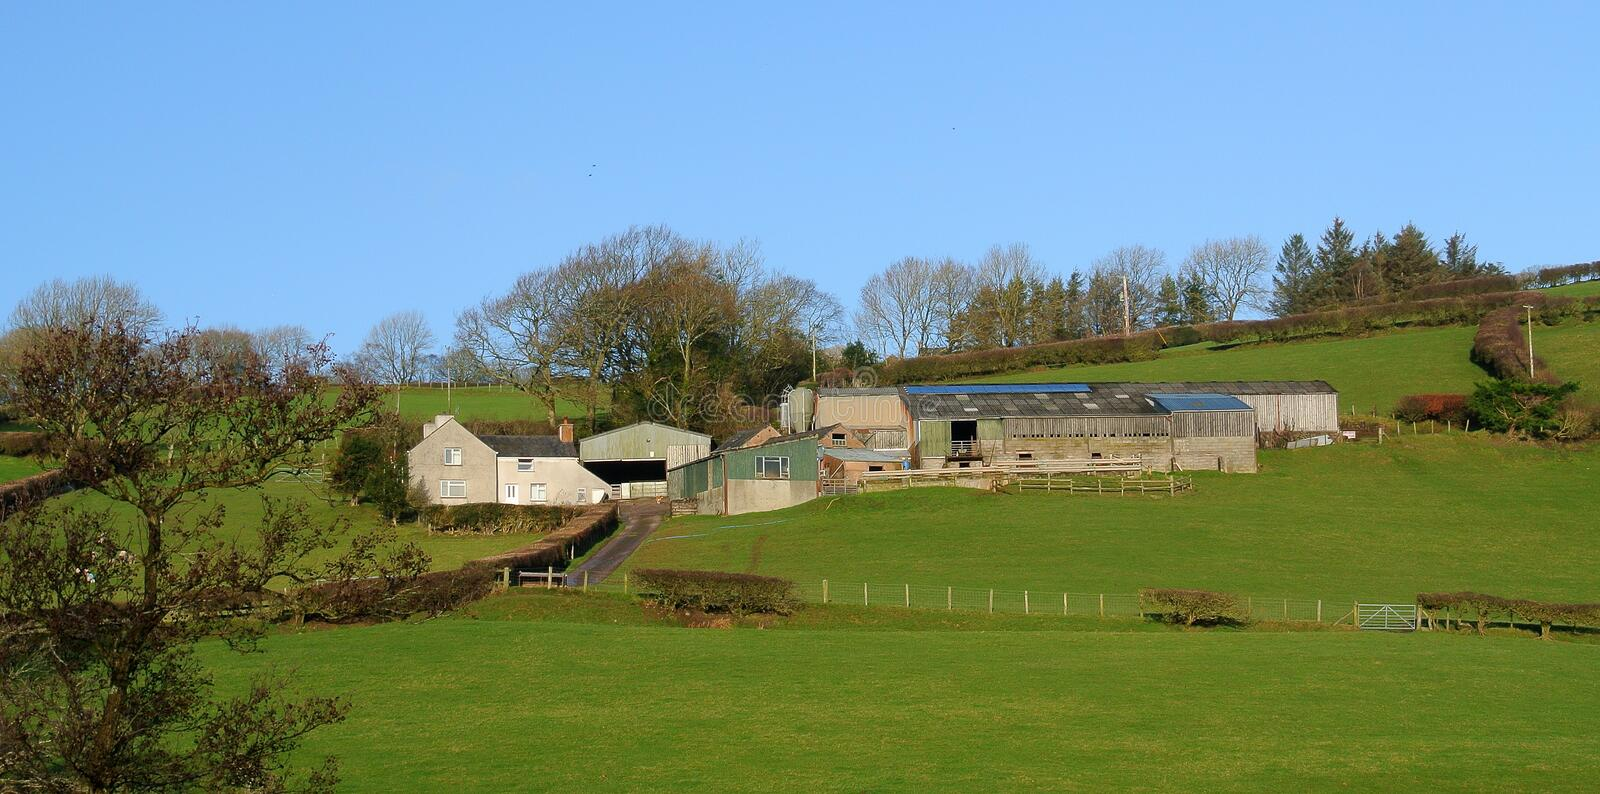 Hill farm in winter sunlight. A sprawling hill farm, on grassy slopes bathed in winter sunshine, barns, house, a skyline with fir trees stock photos